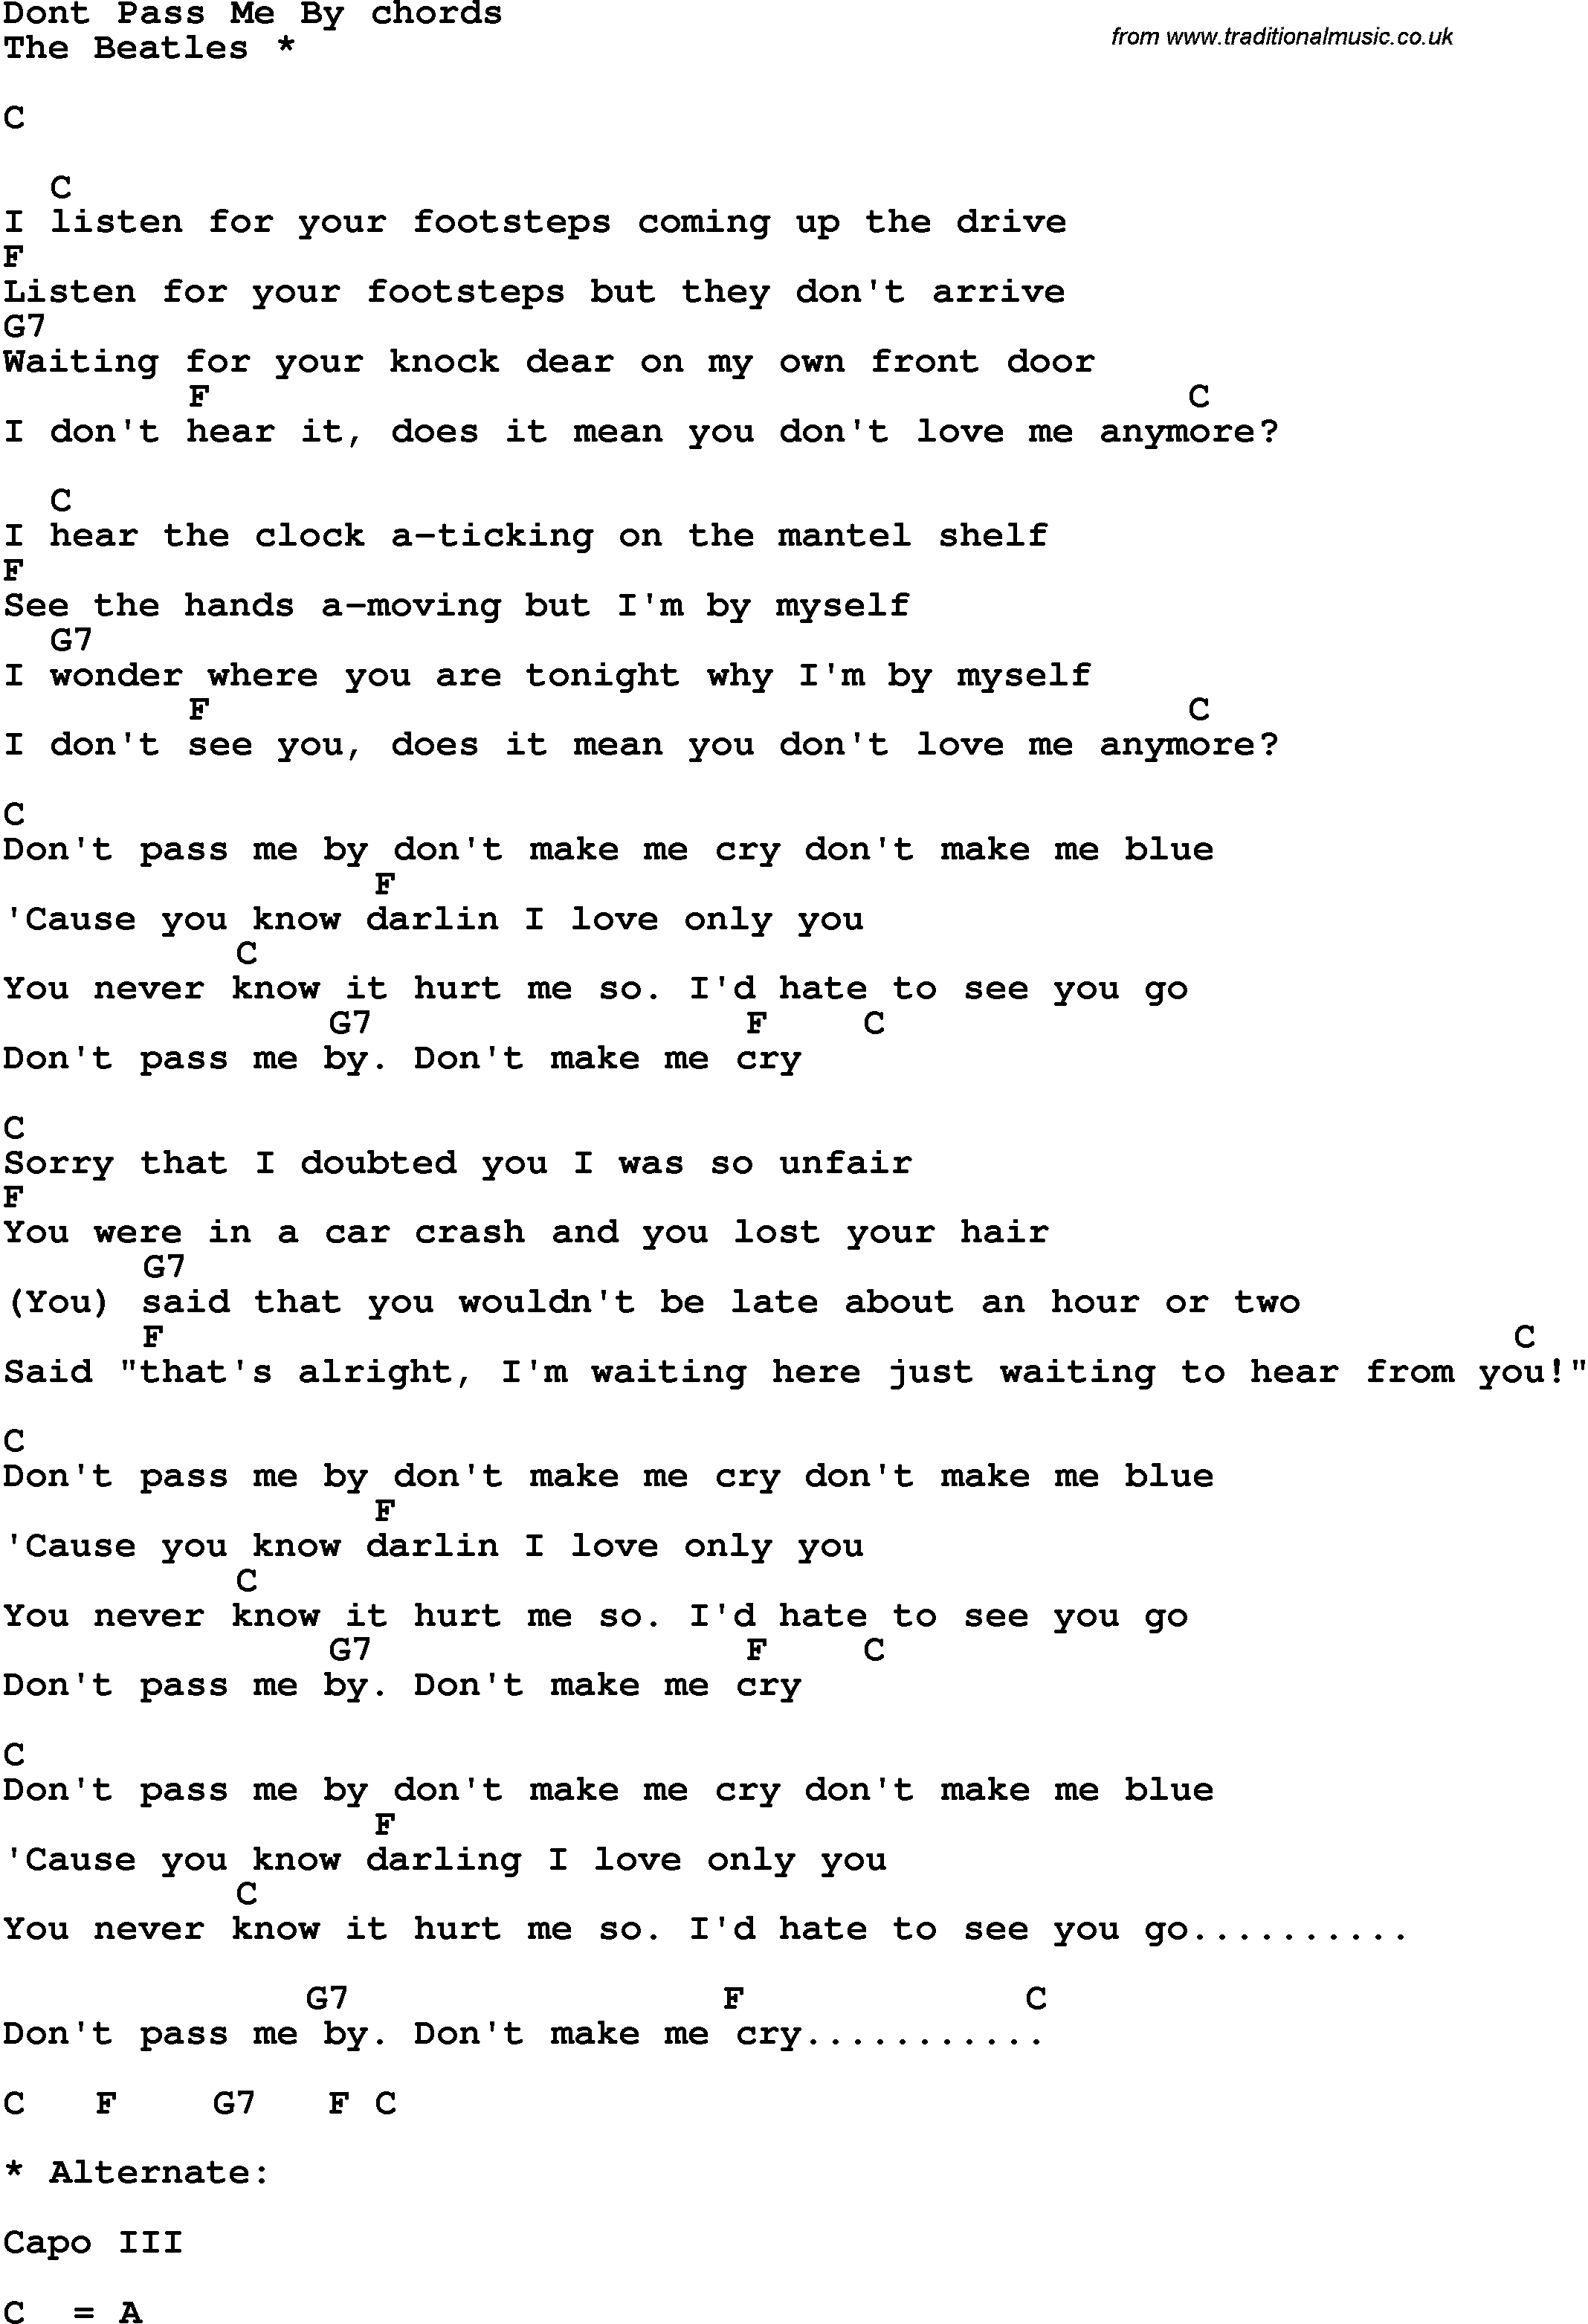 Song Lyrics With Guitar Chords For Dont Pass Me By The Beatles